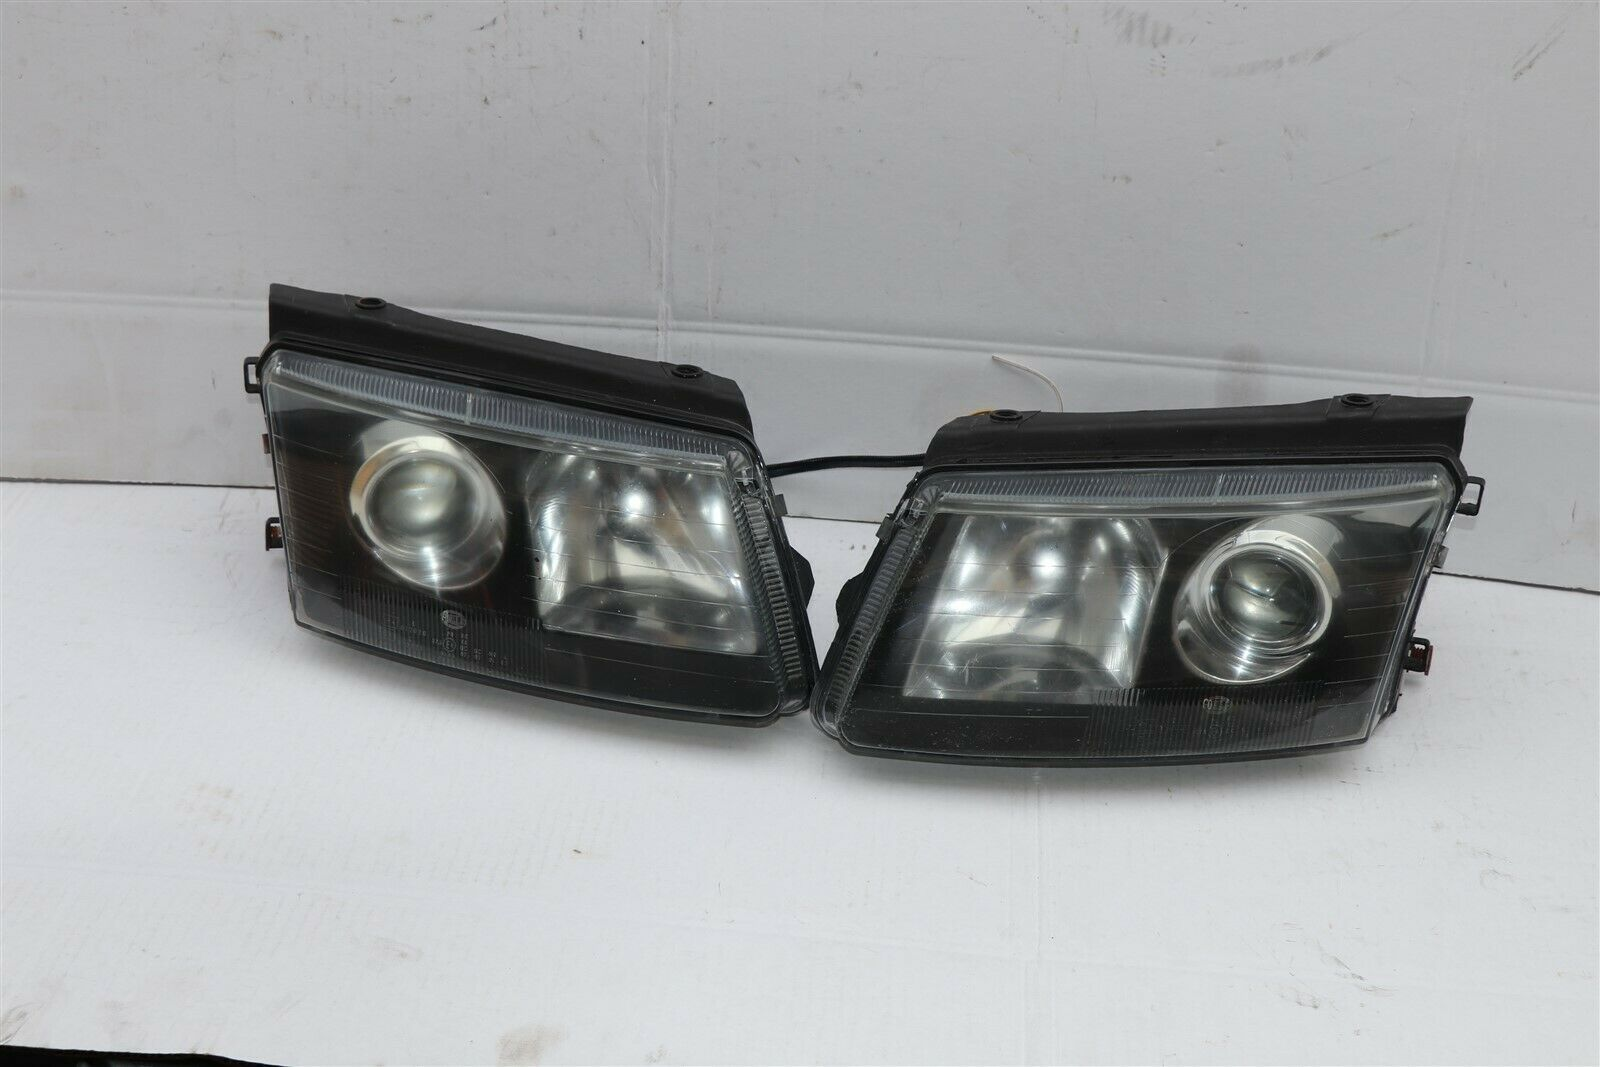 98-00 Volkswagen Passat B5 Projector Halogen Headlight Head Lights Lamps Set L&R